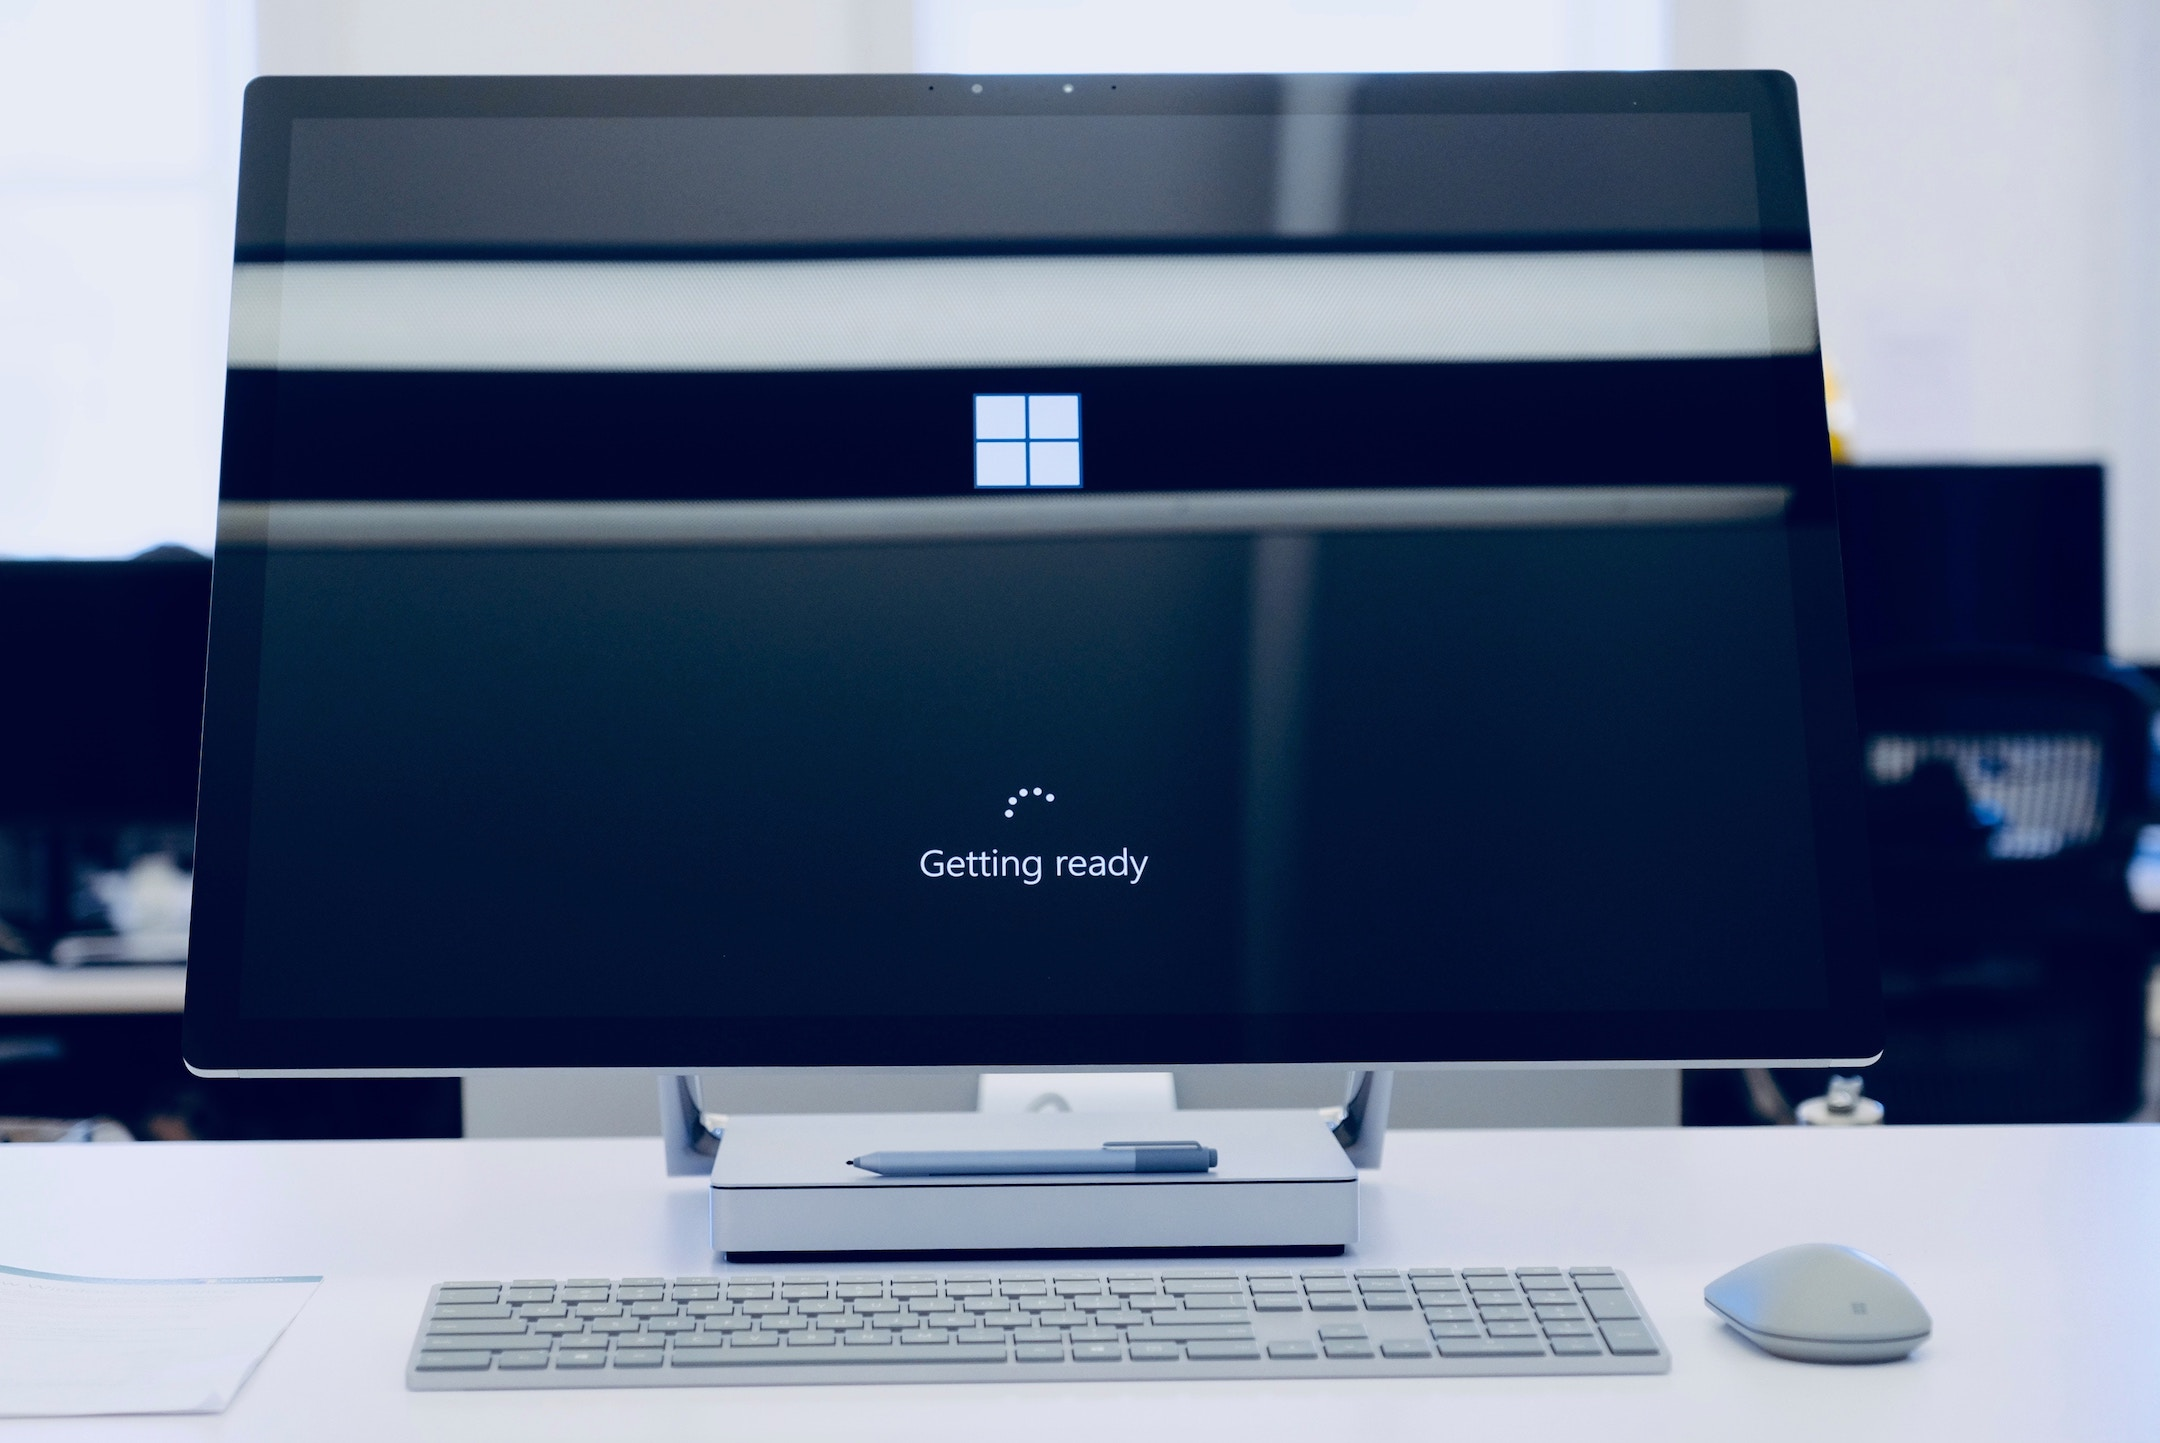 [Image Description: A large desktop computer screen sits above a keyboard and mouse and the screen says 'Getting ready'.]